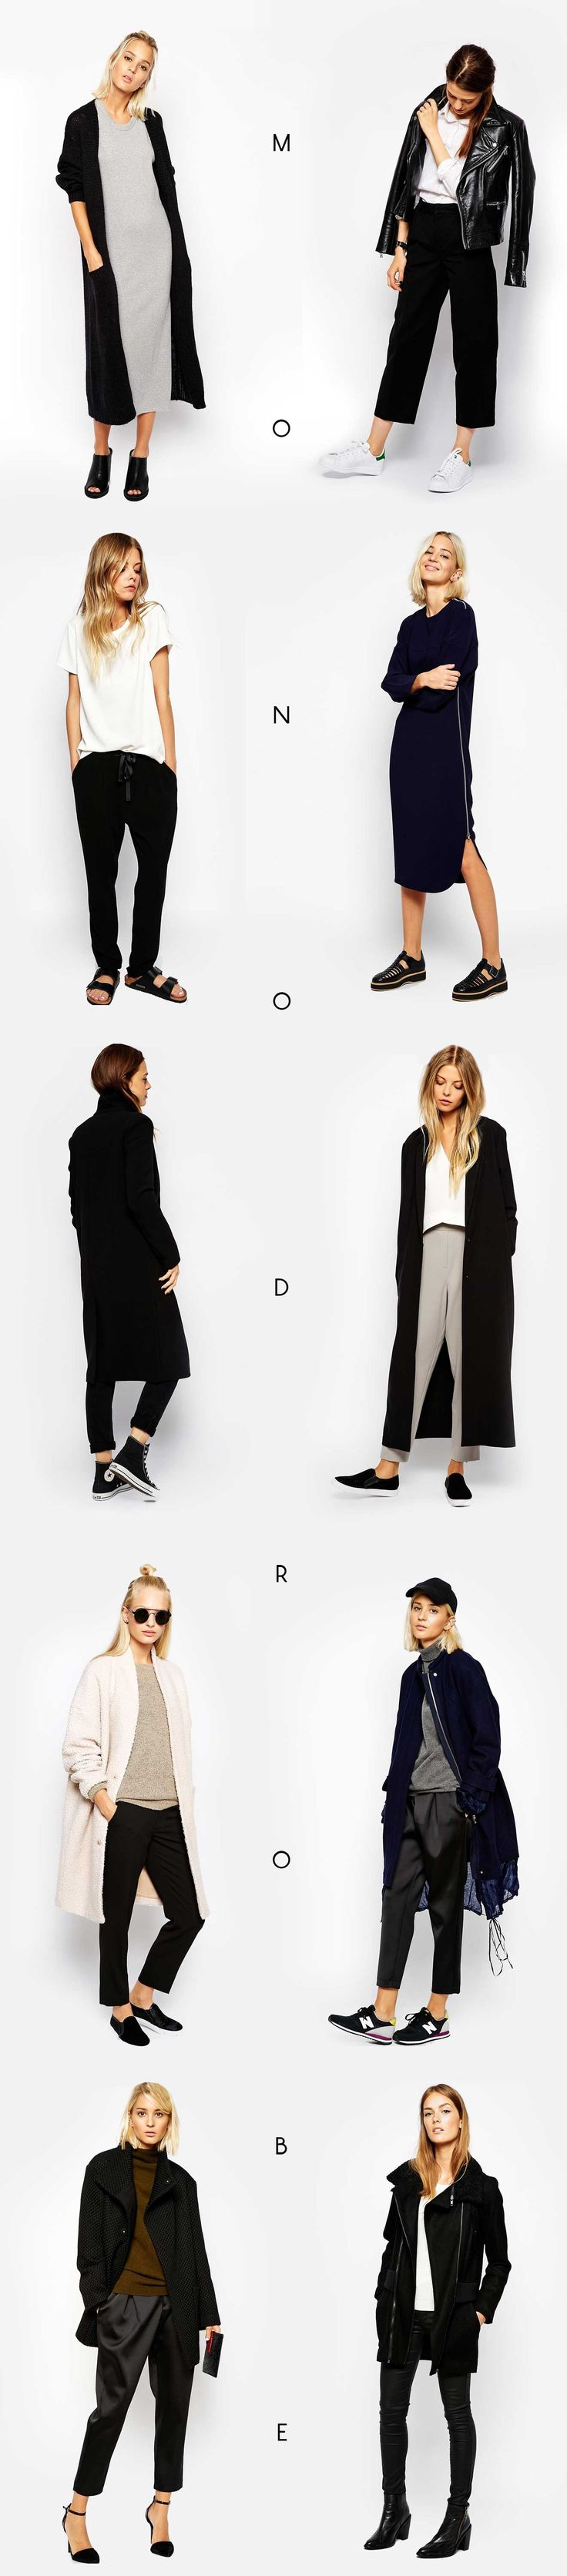 The 25 Best Minimalist Fashion Ideas On Pinterest